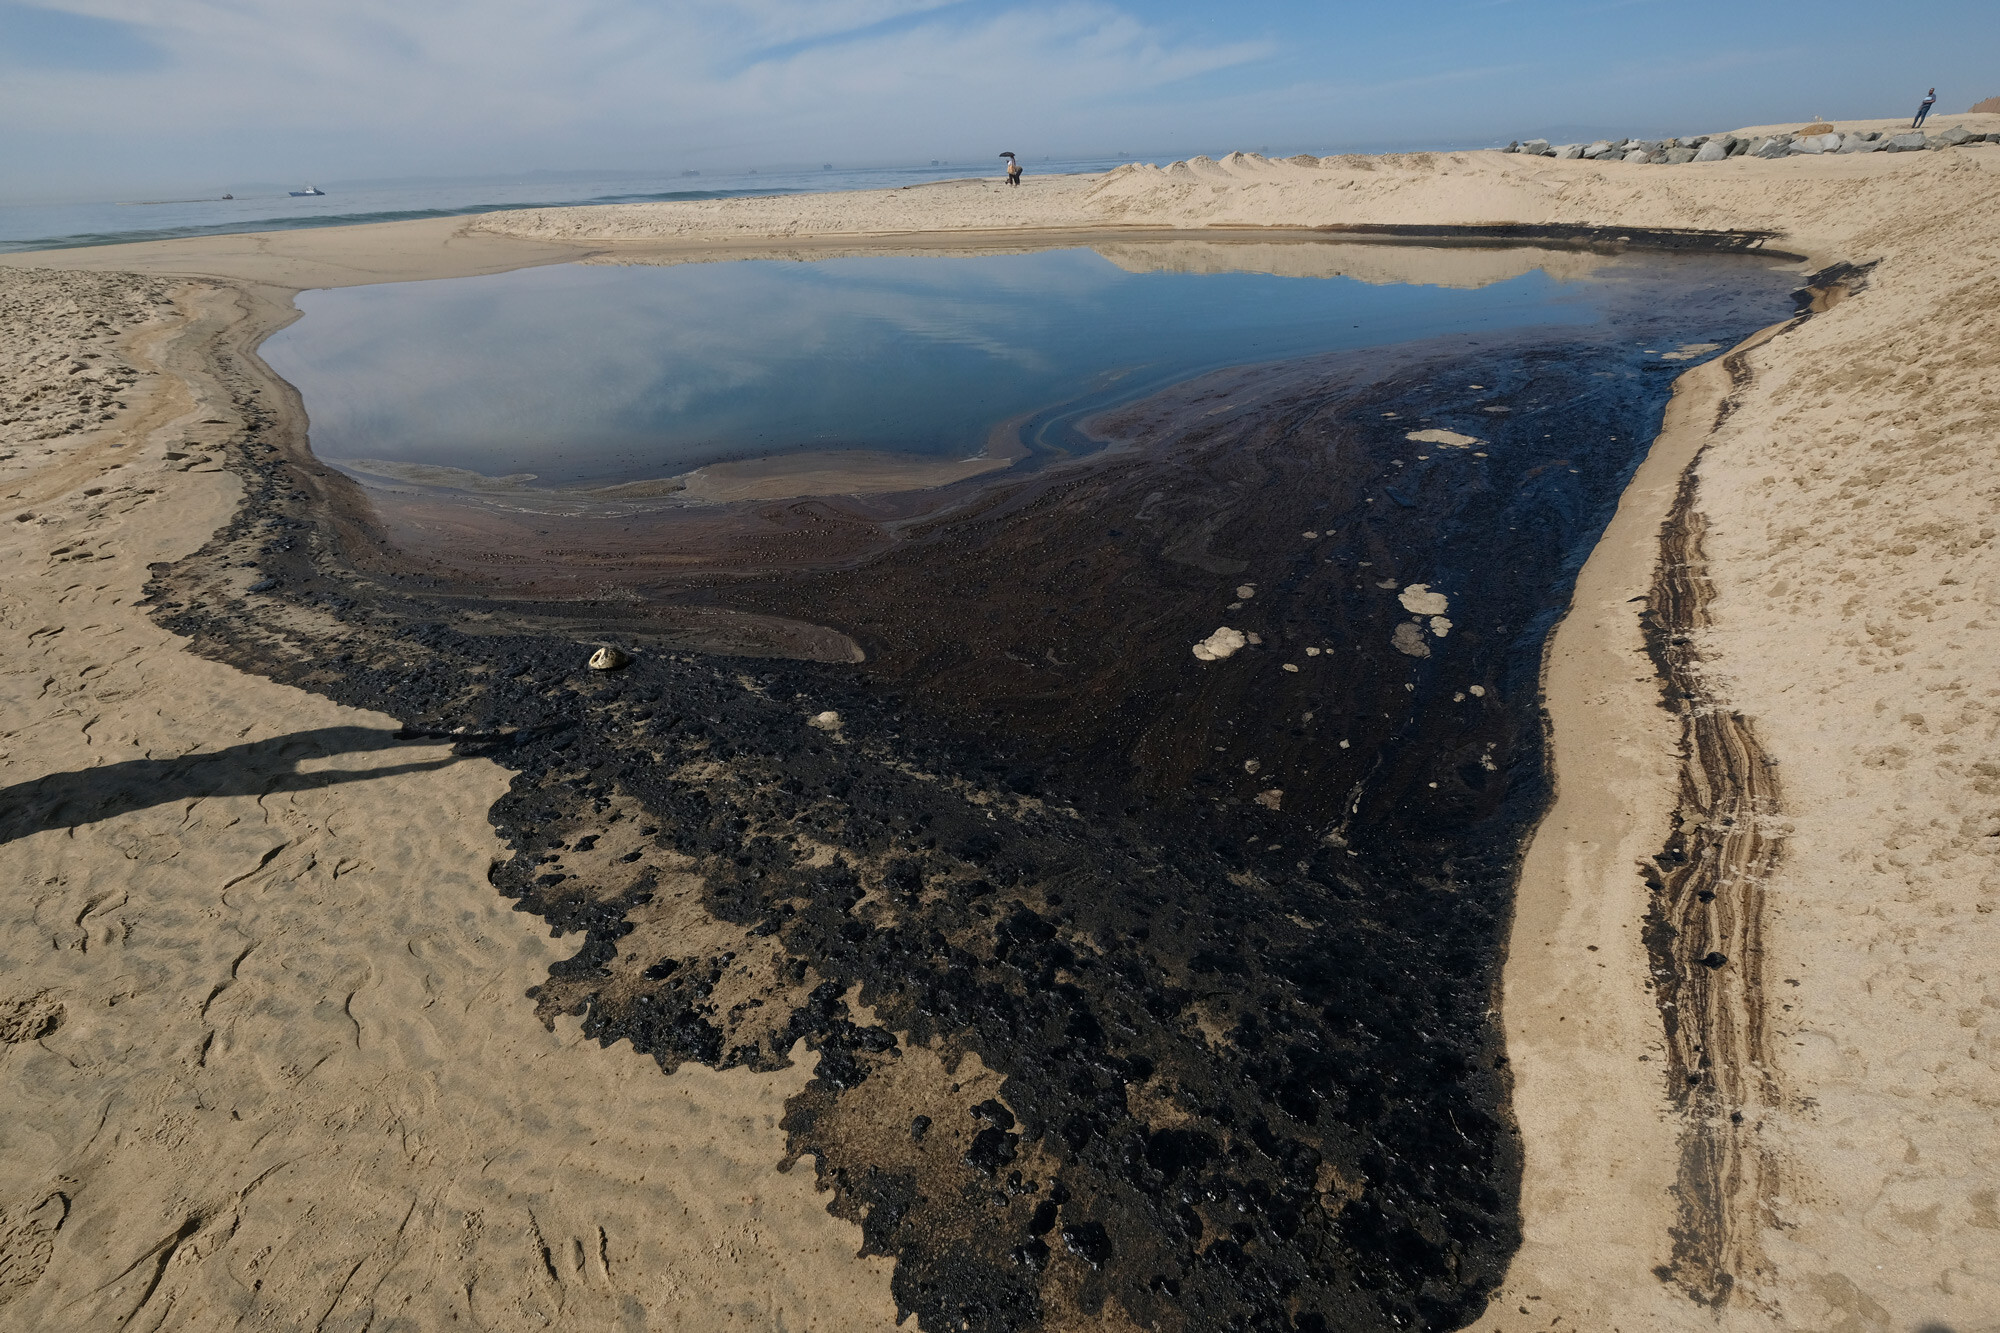 Stock plunges at the tiny company responsible for California's massive oil spill